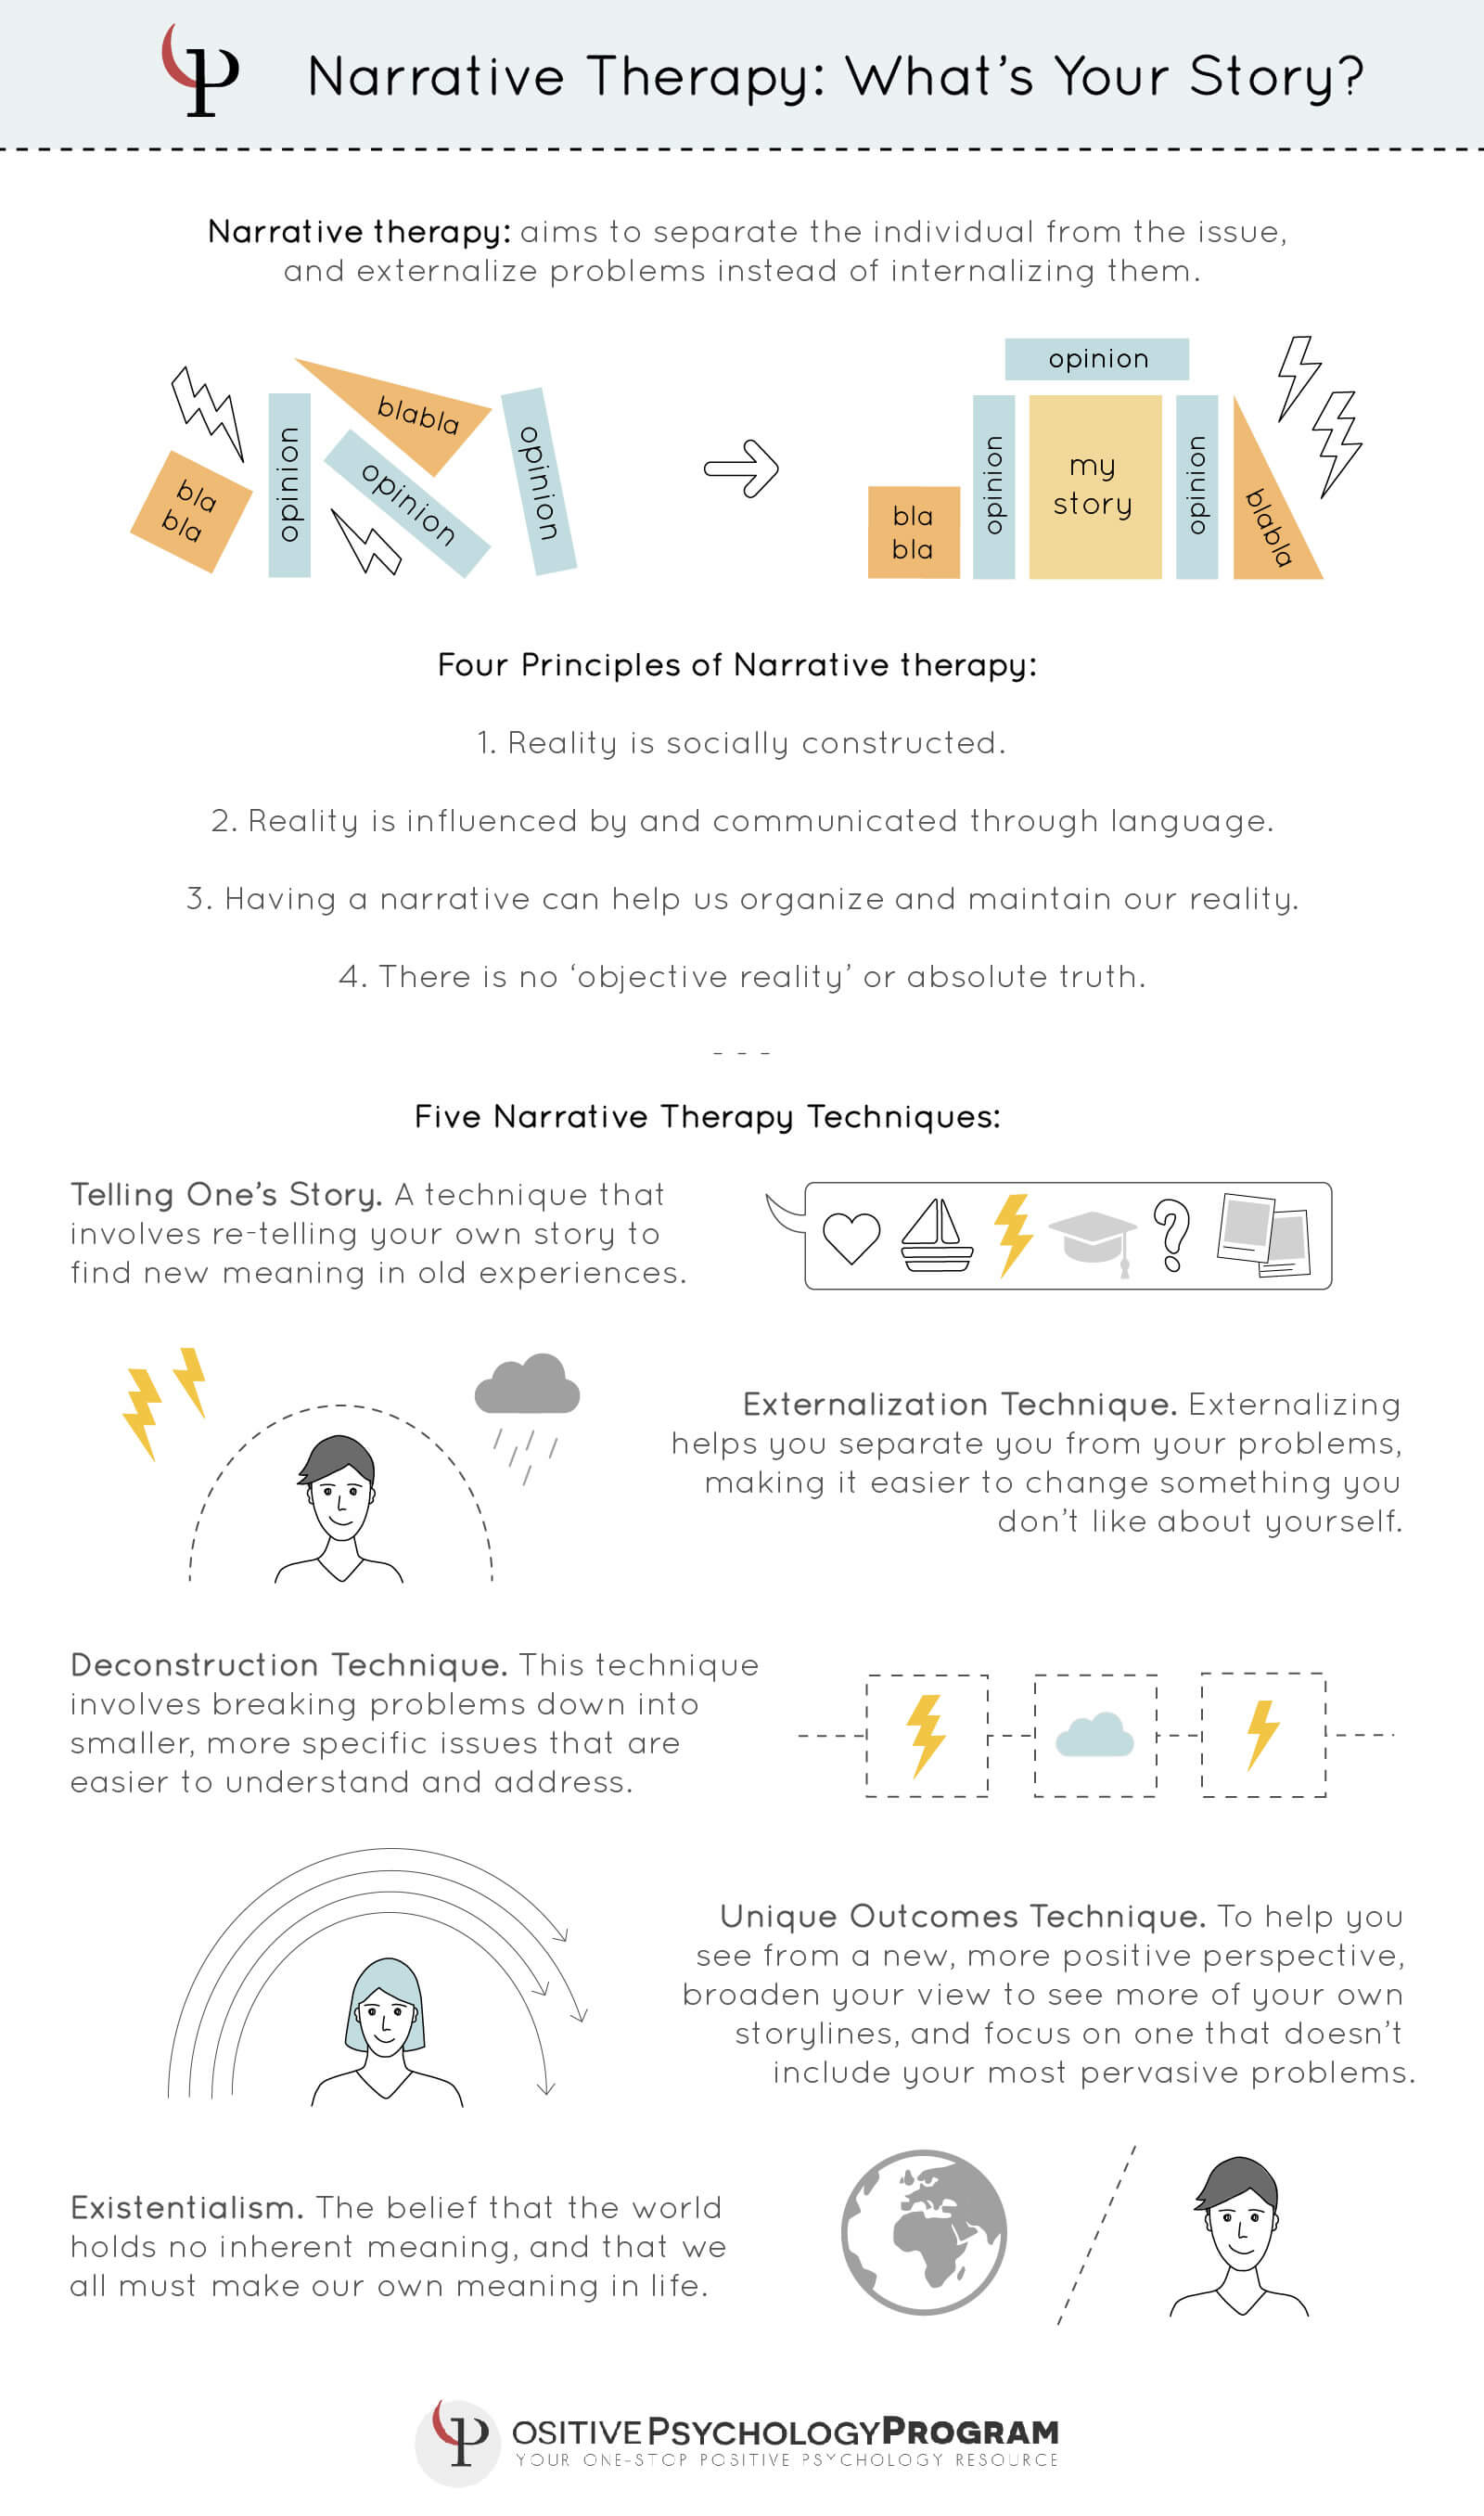 19 Narrative Therapy Techniques, Interventions + Worksheets